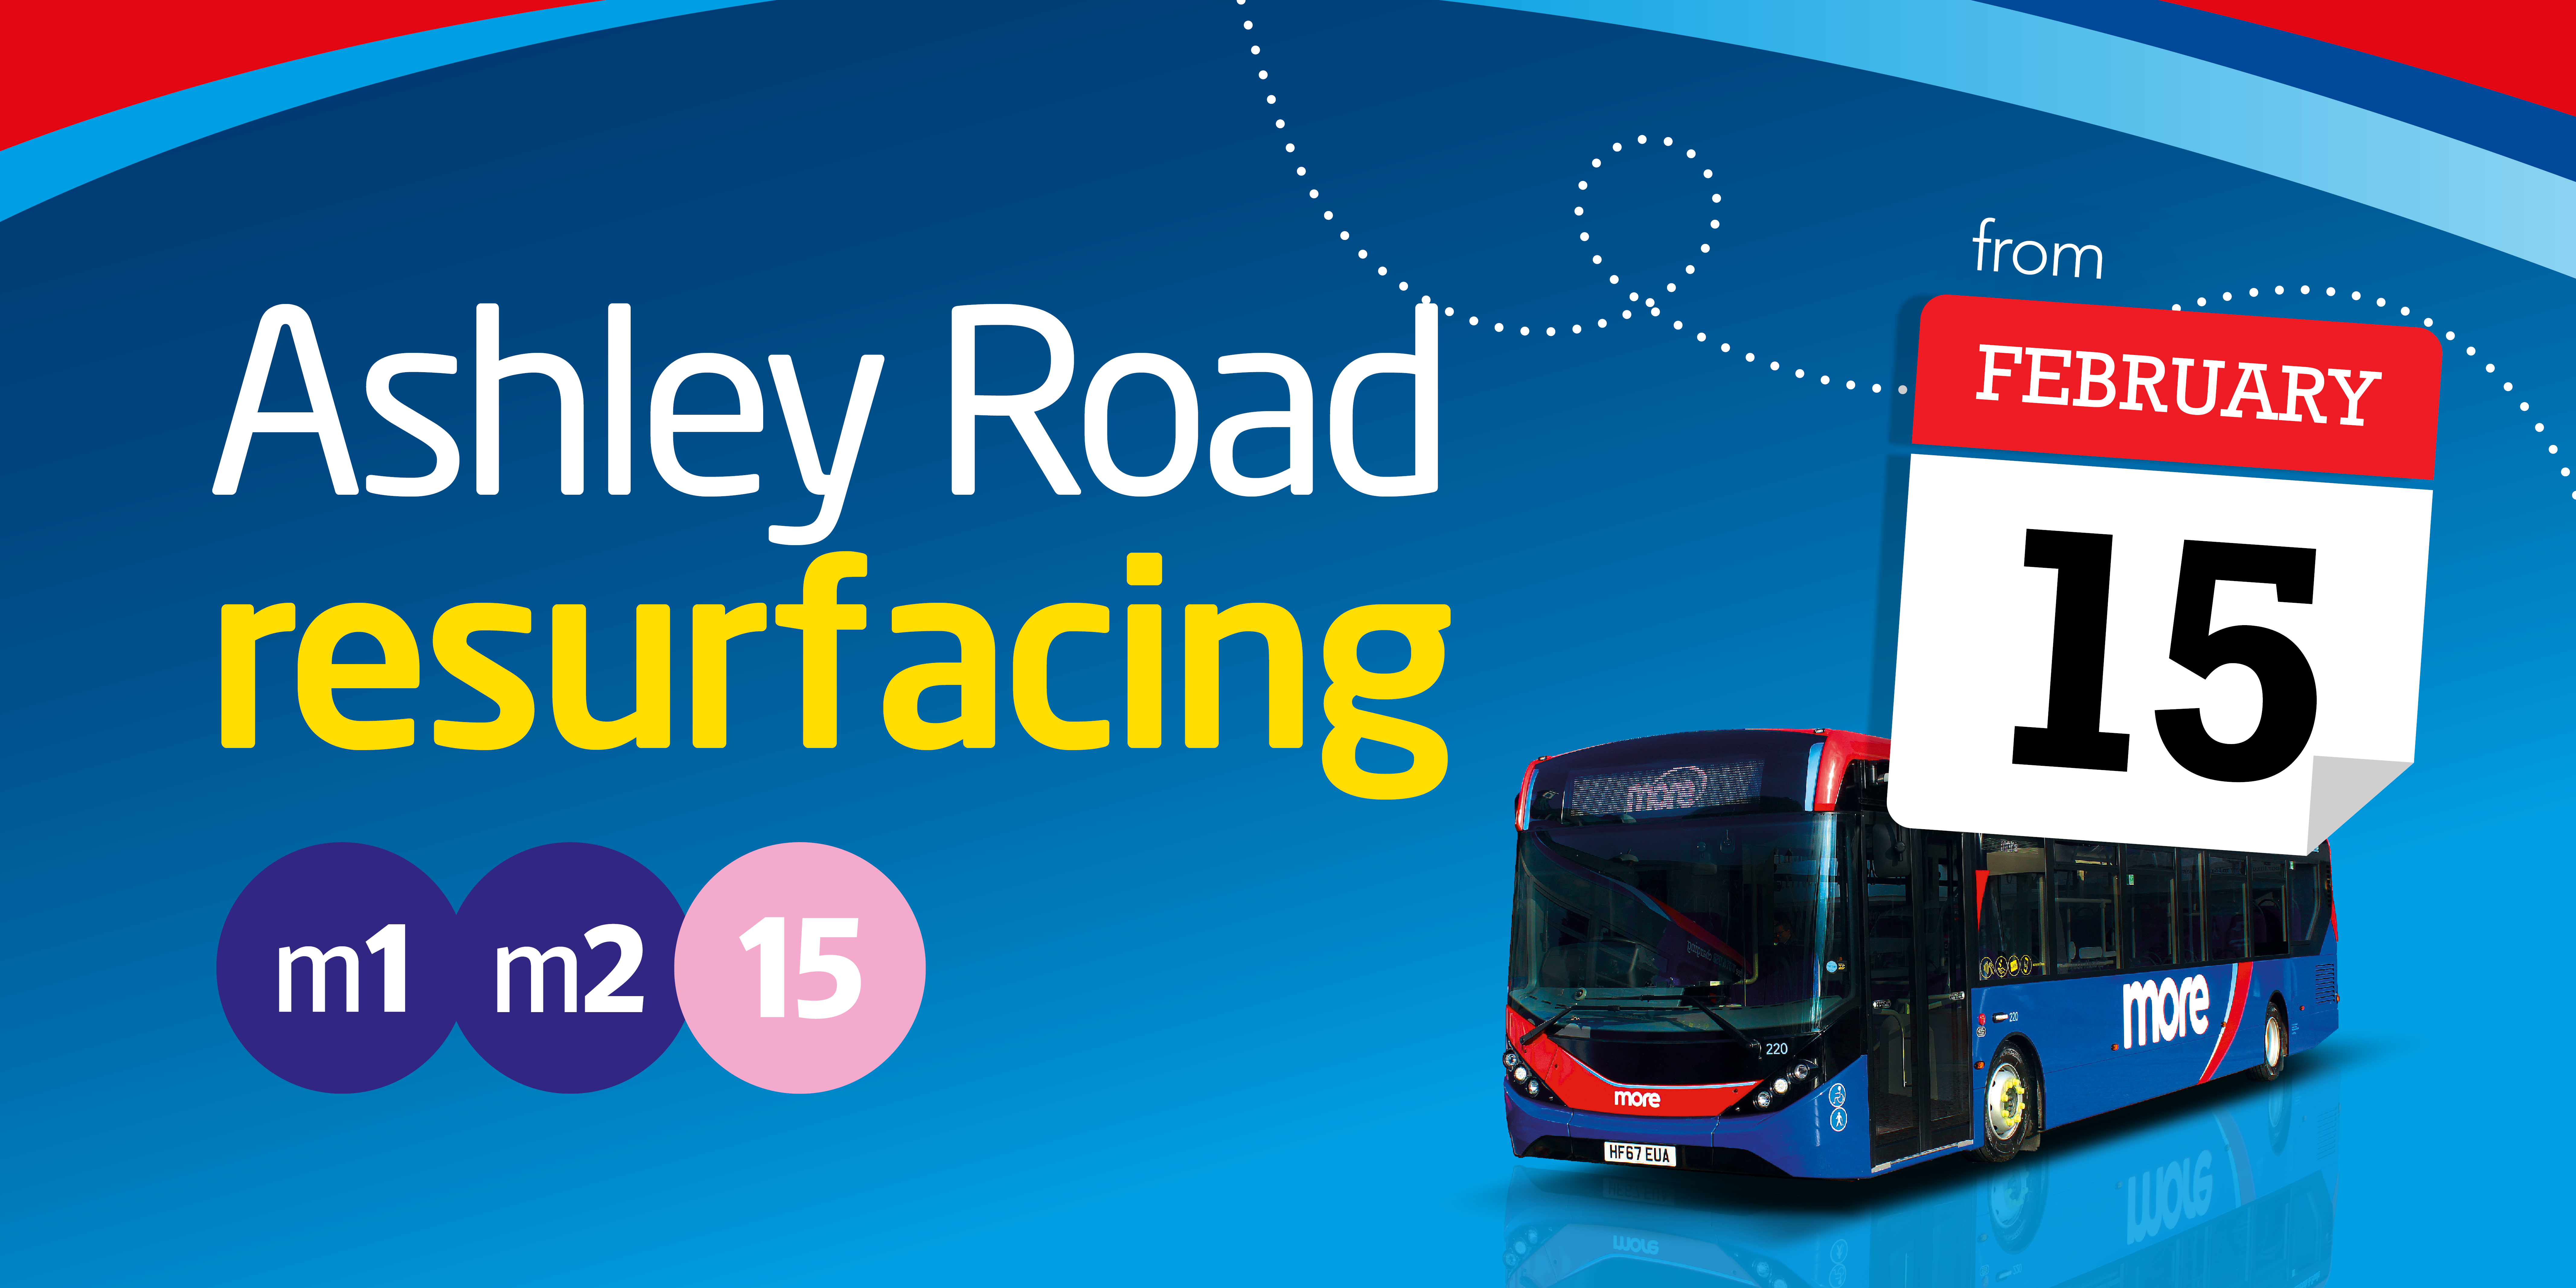 Image of a morebus with text reading 'Ashley Road resurfacing from 15th February. Affecting routes m1, m2 and 15.'